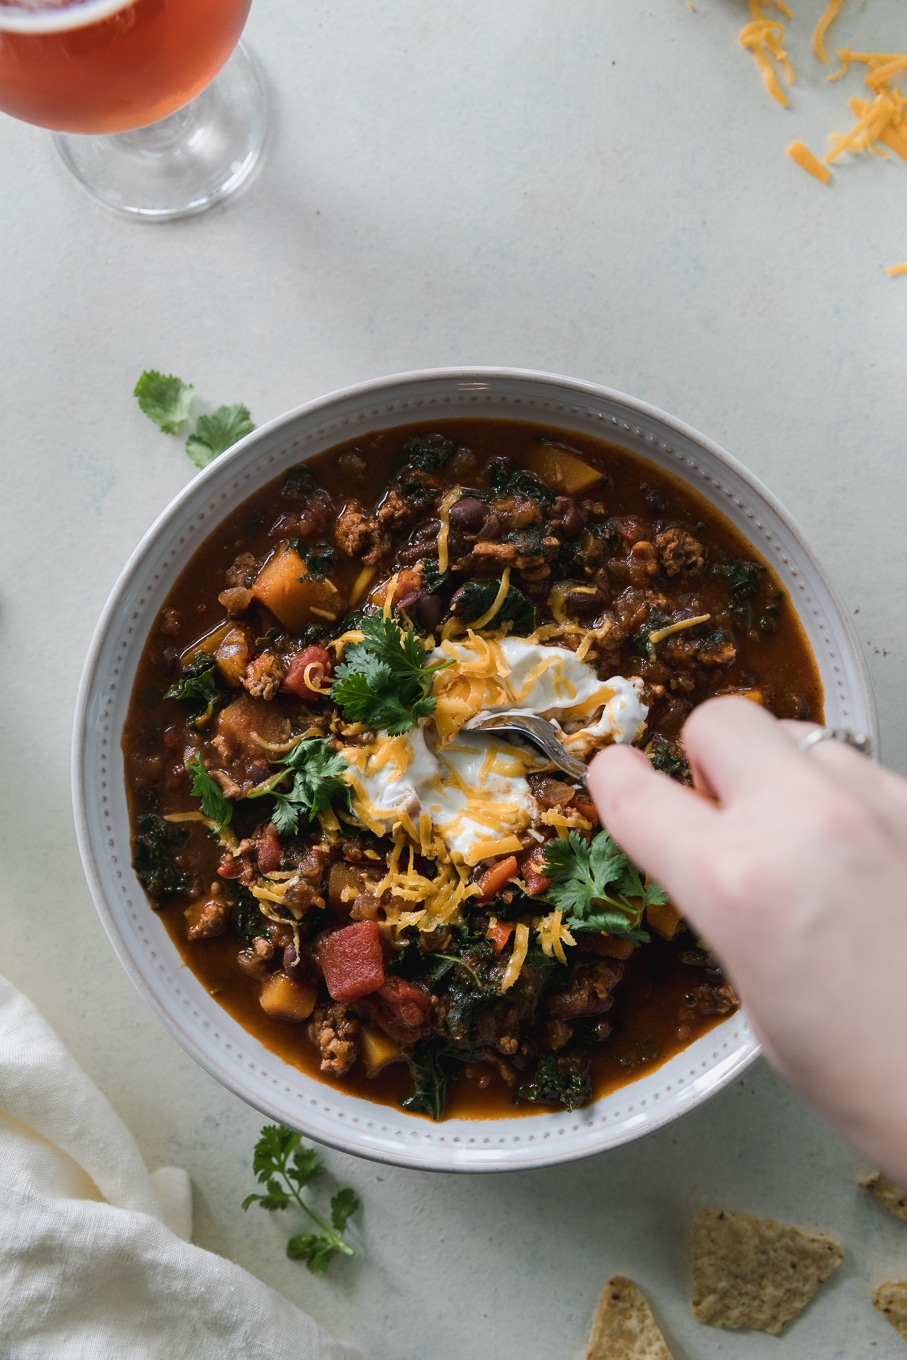 Overhead shot of a bowl of chili topped with sour cream, shredded cheddar, and cilantro, with a hand stirring the chili with a spoon